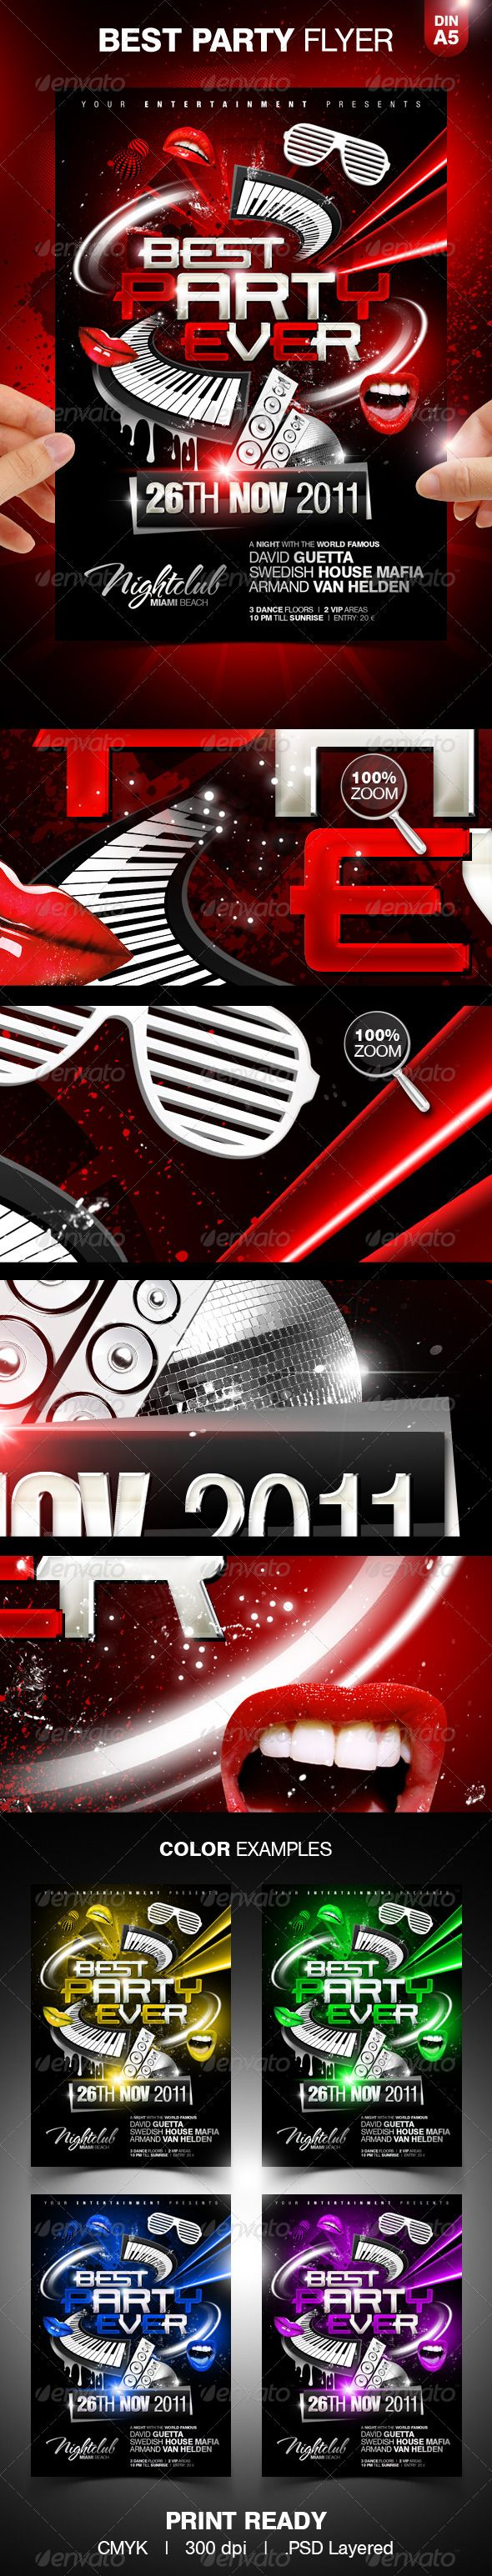 Best Party Ever Party Flyer Template - GraphicRiver Item for Sale